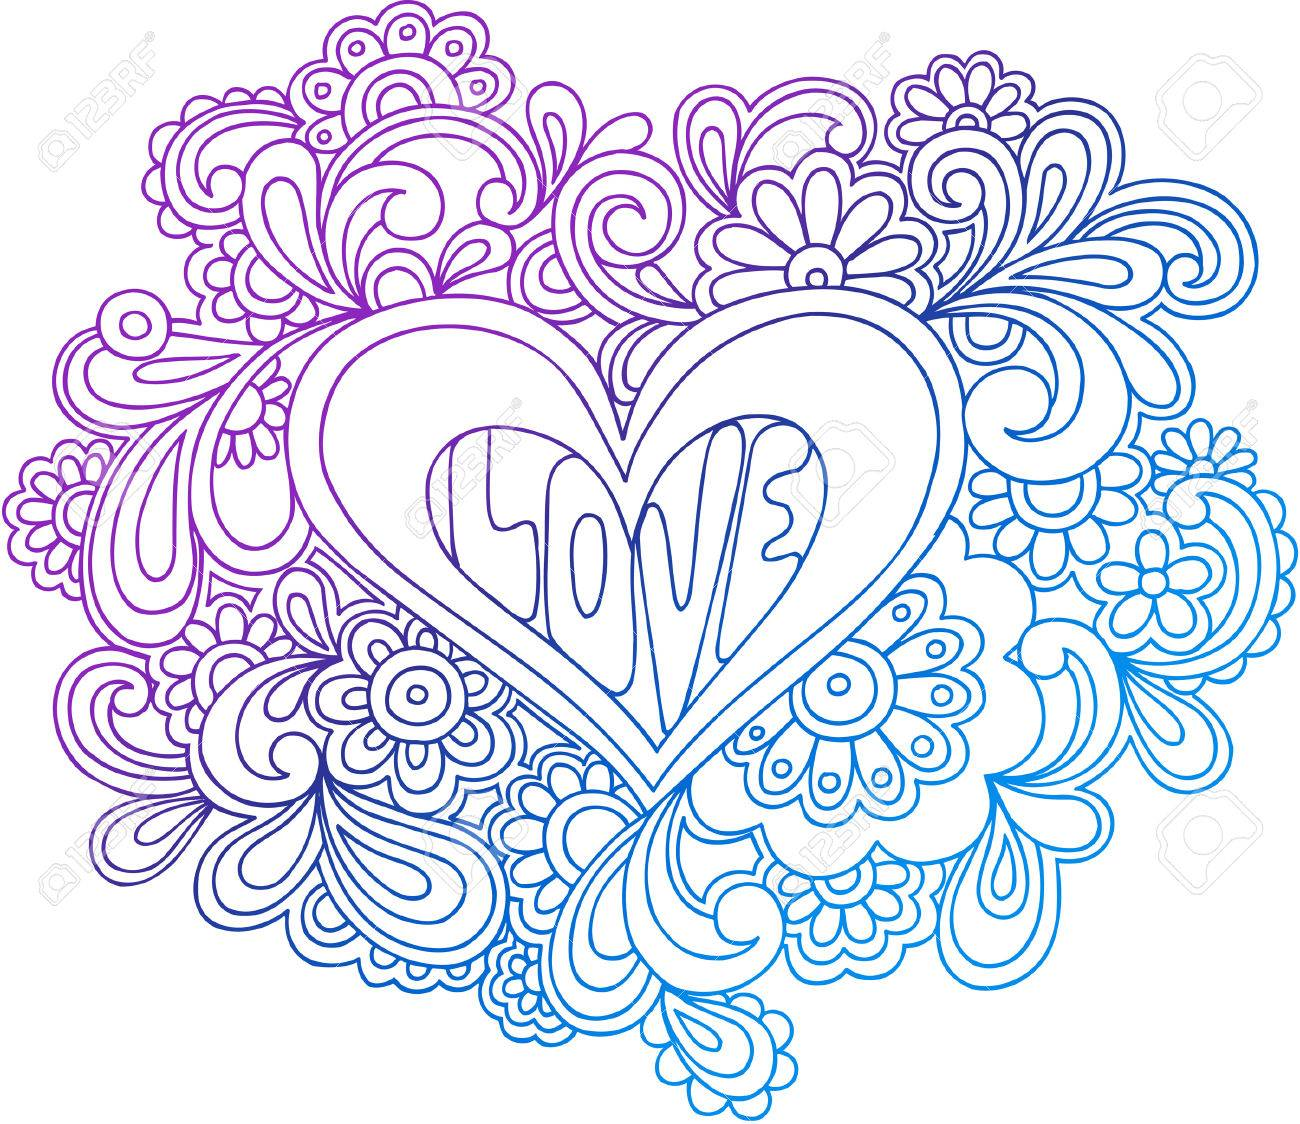 Psychedelic Heart Outline Vector Illustration Stock Vector - 3355719